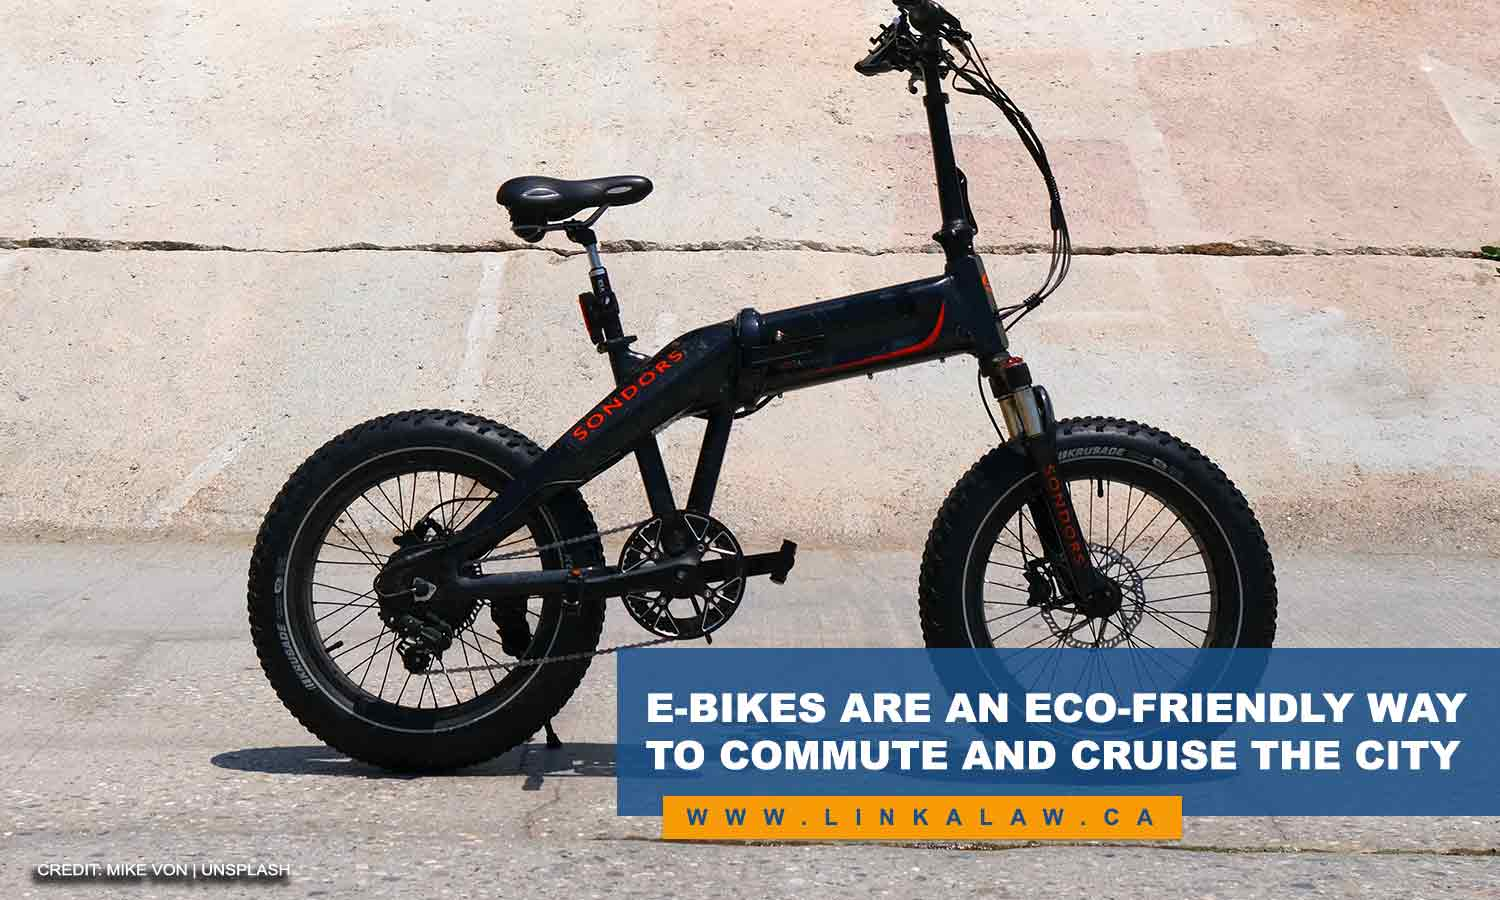 E-bikes are an eco-friendly way to commute and cruise the city